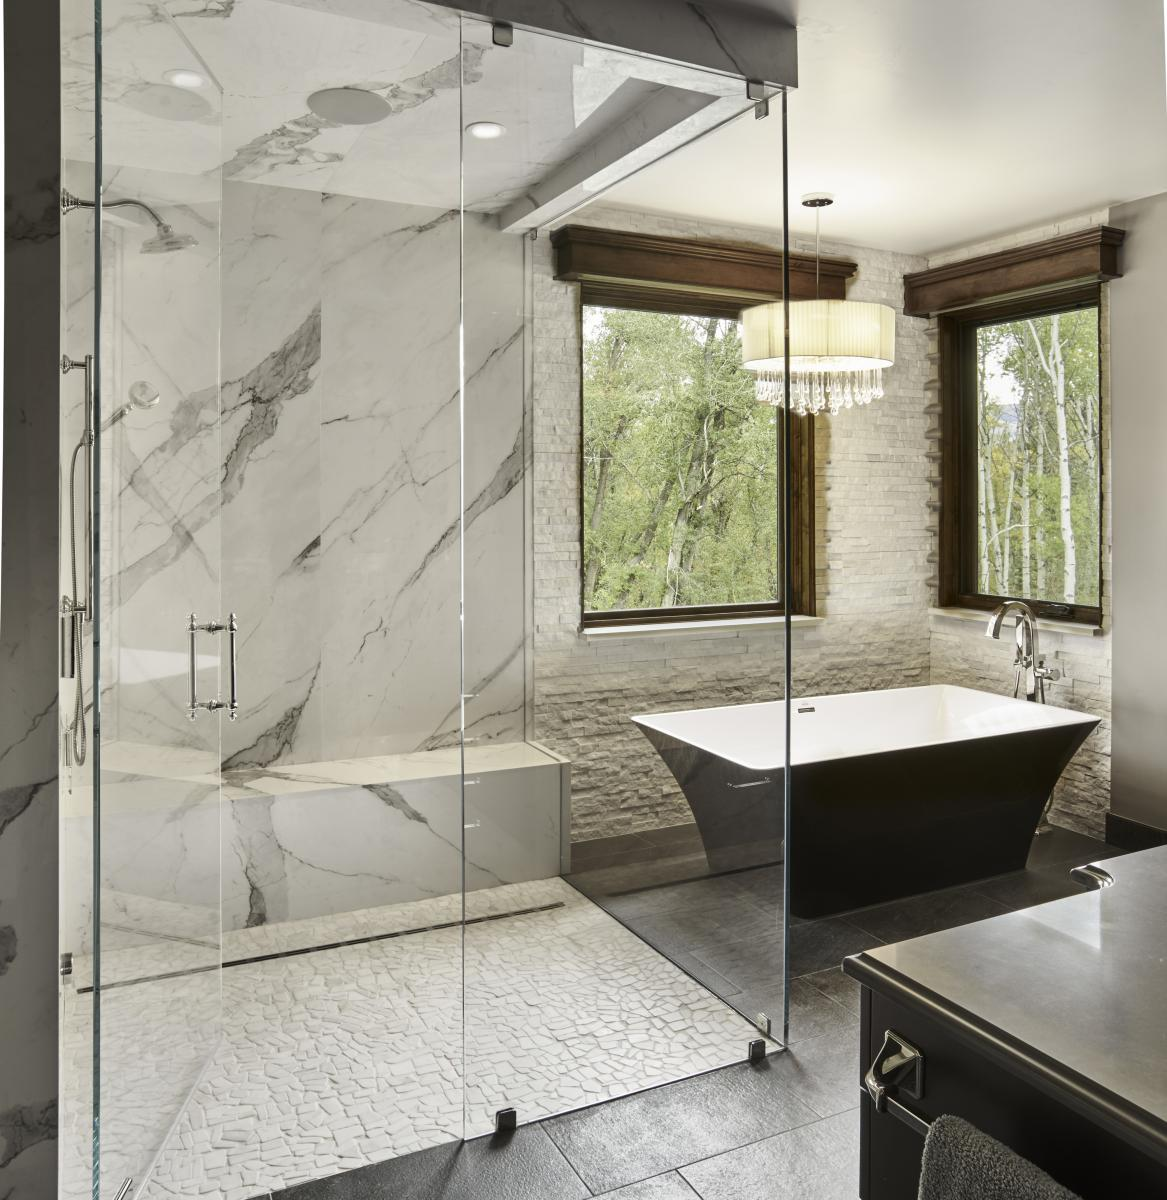 Recent Projects - Bathrooms